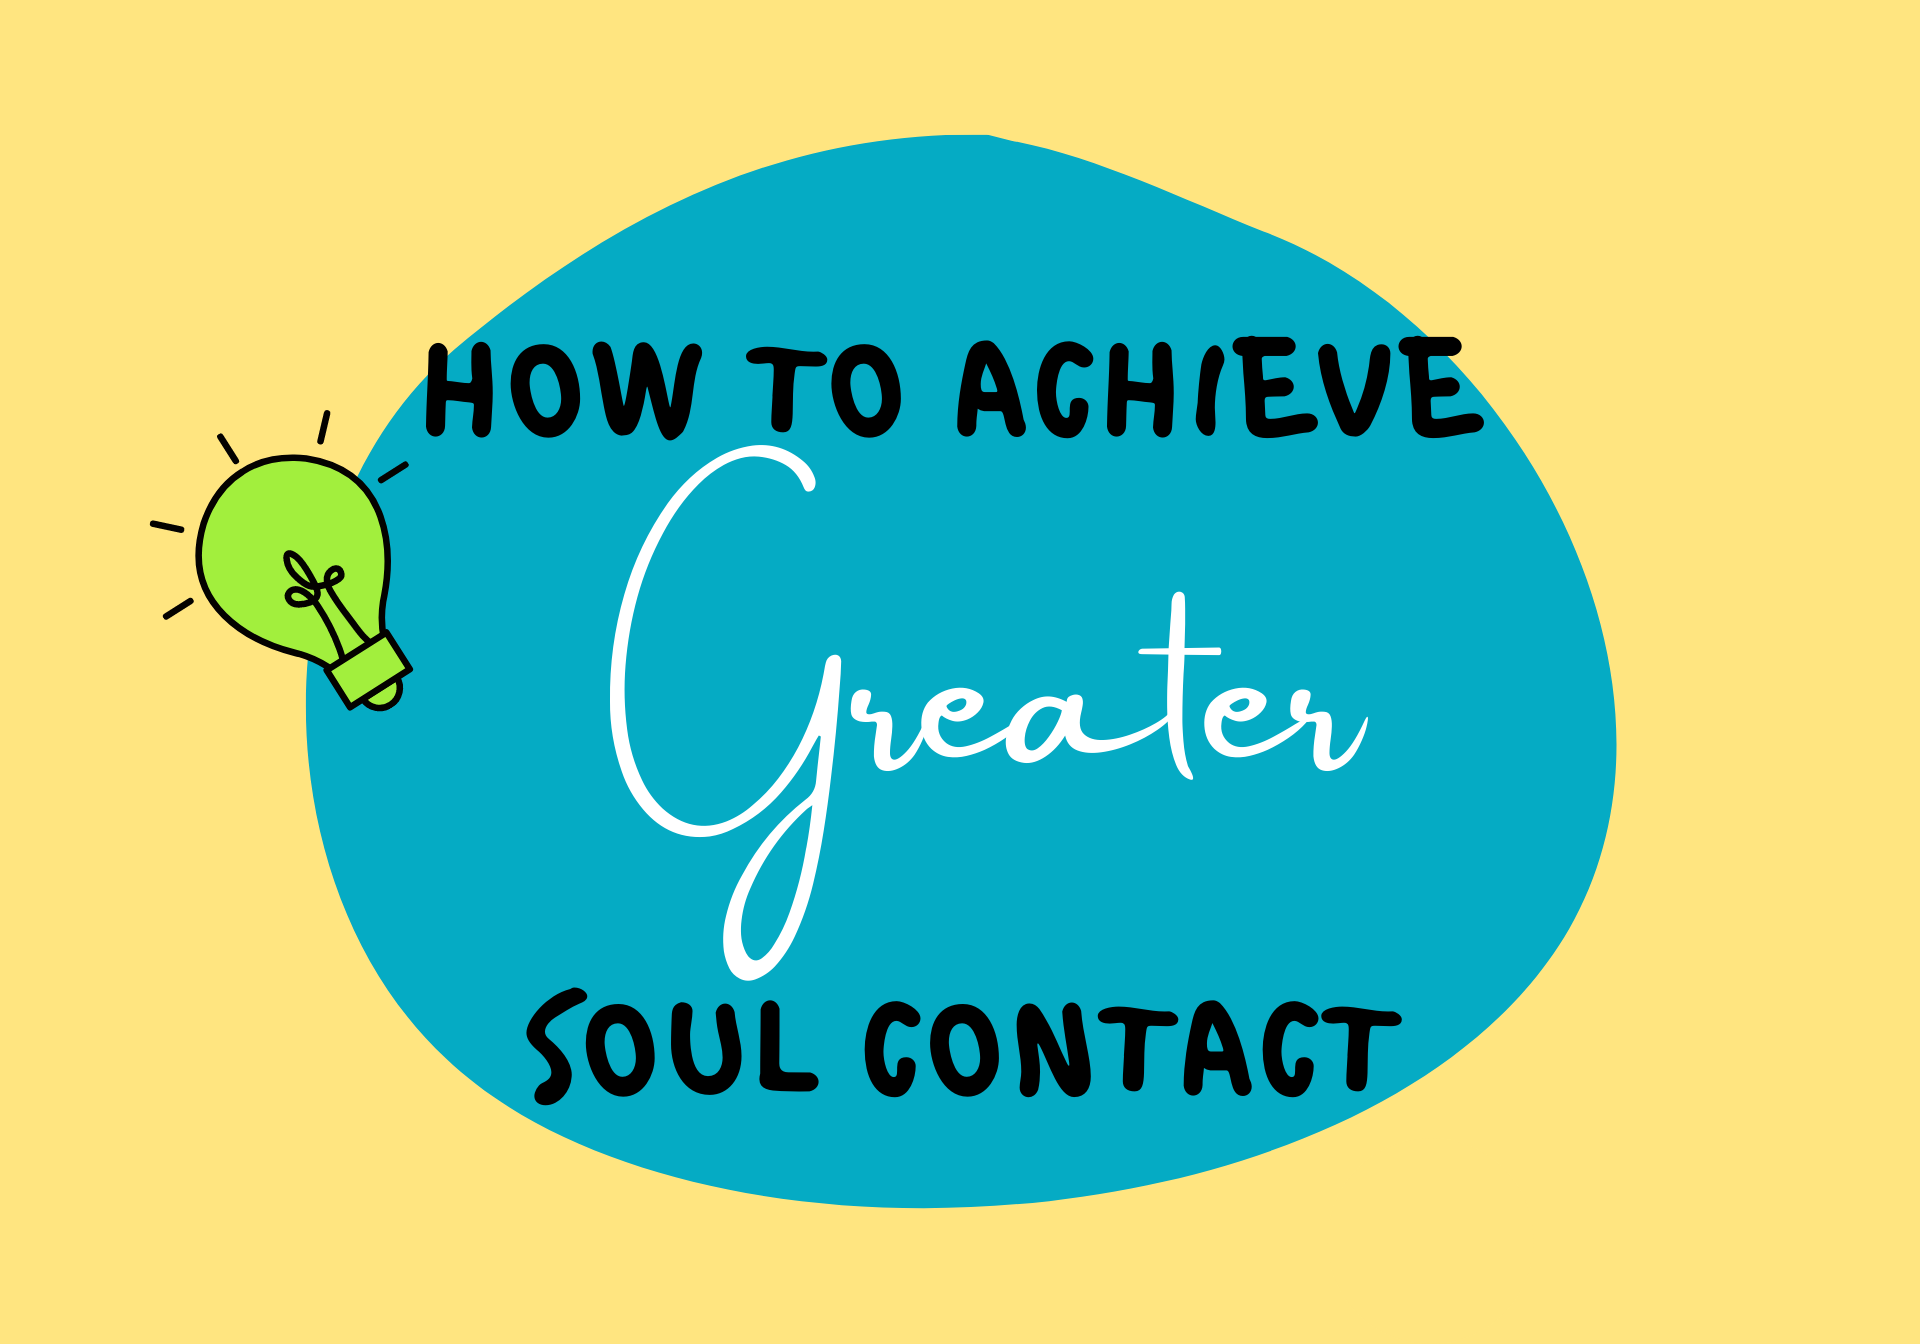 How To Achieve Greater Soul Contact